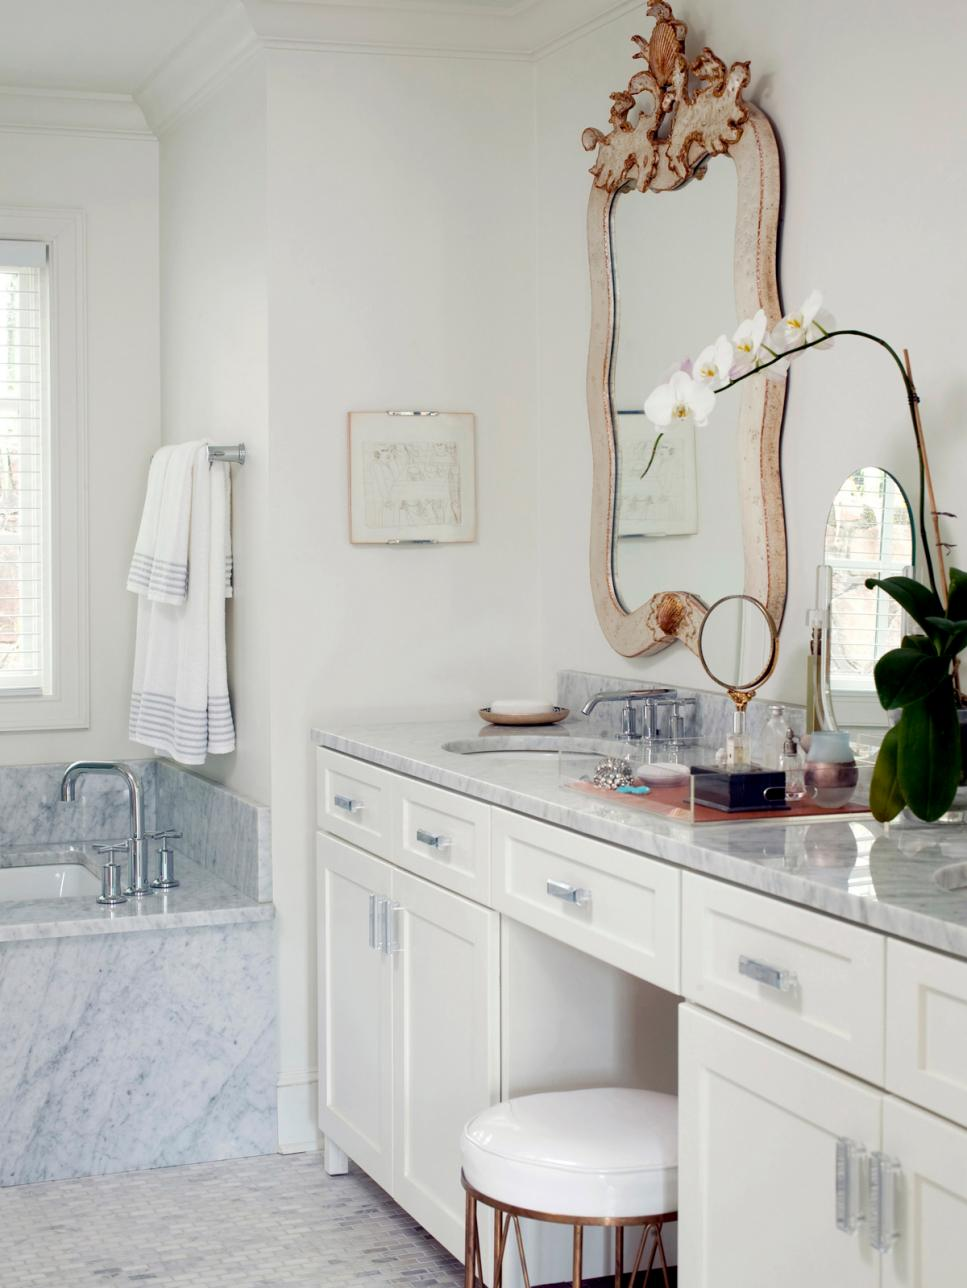 Marble bathroom counter tops - Marble Bathroom Vanity Irvine